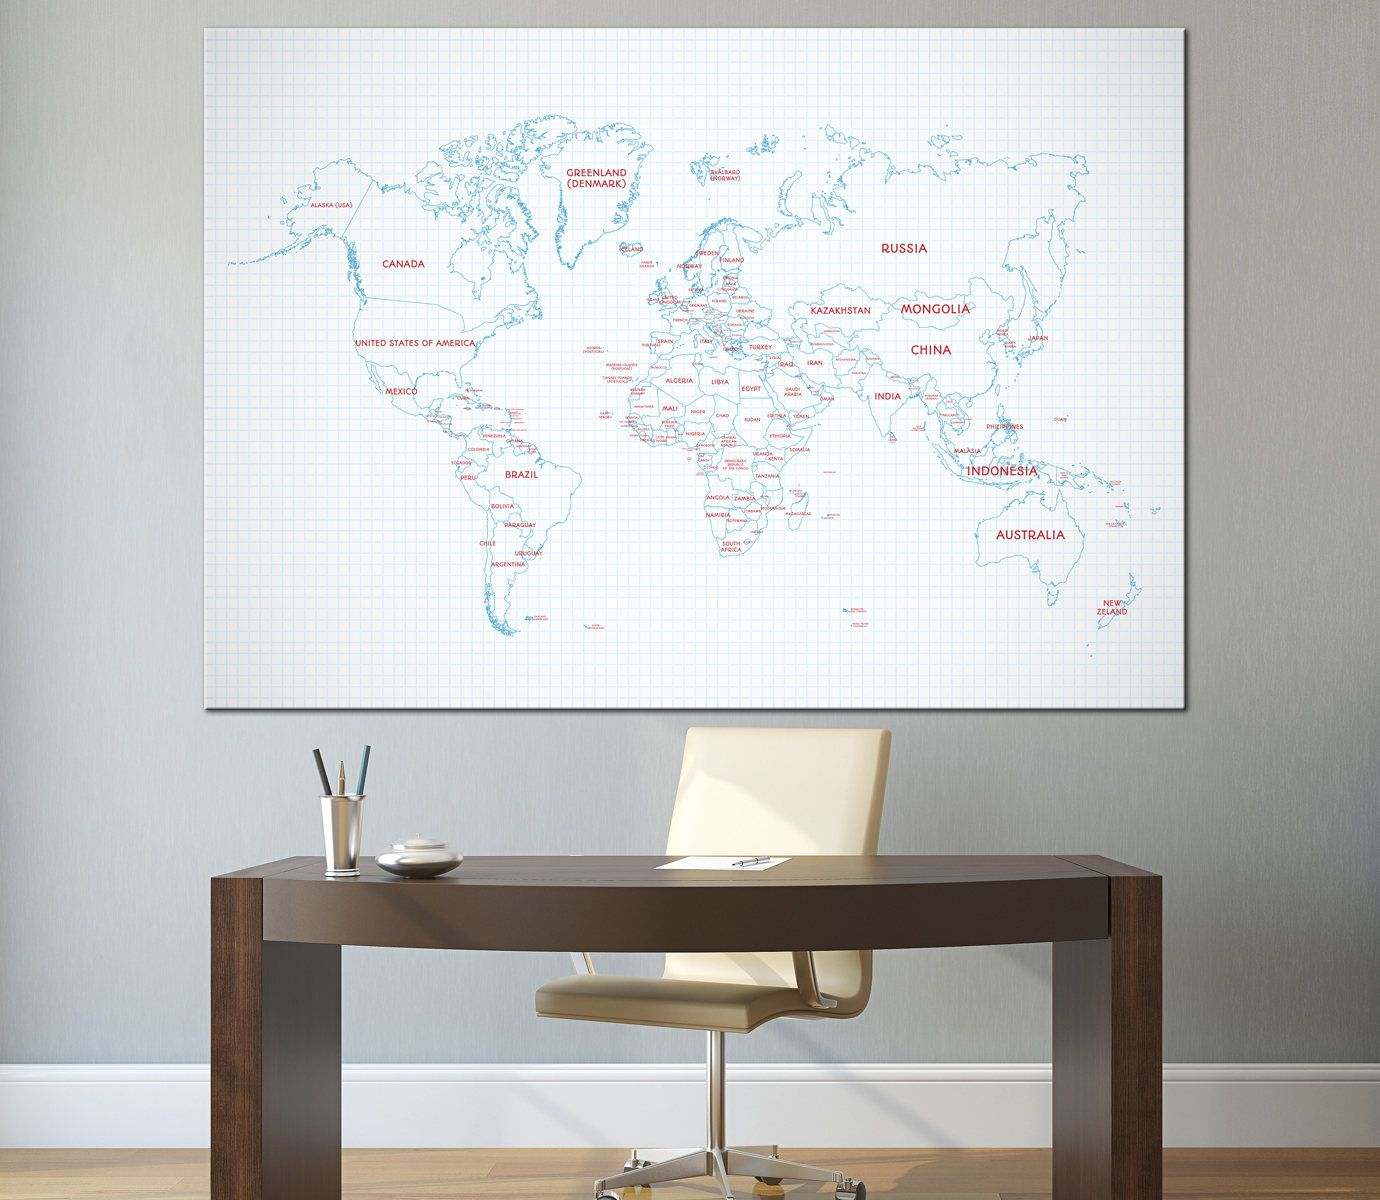 Large detailed blue world map wall art with countries names and large blue world map wall art with countries names and borders canvas printdetailed world gumiabroncs Choice Image